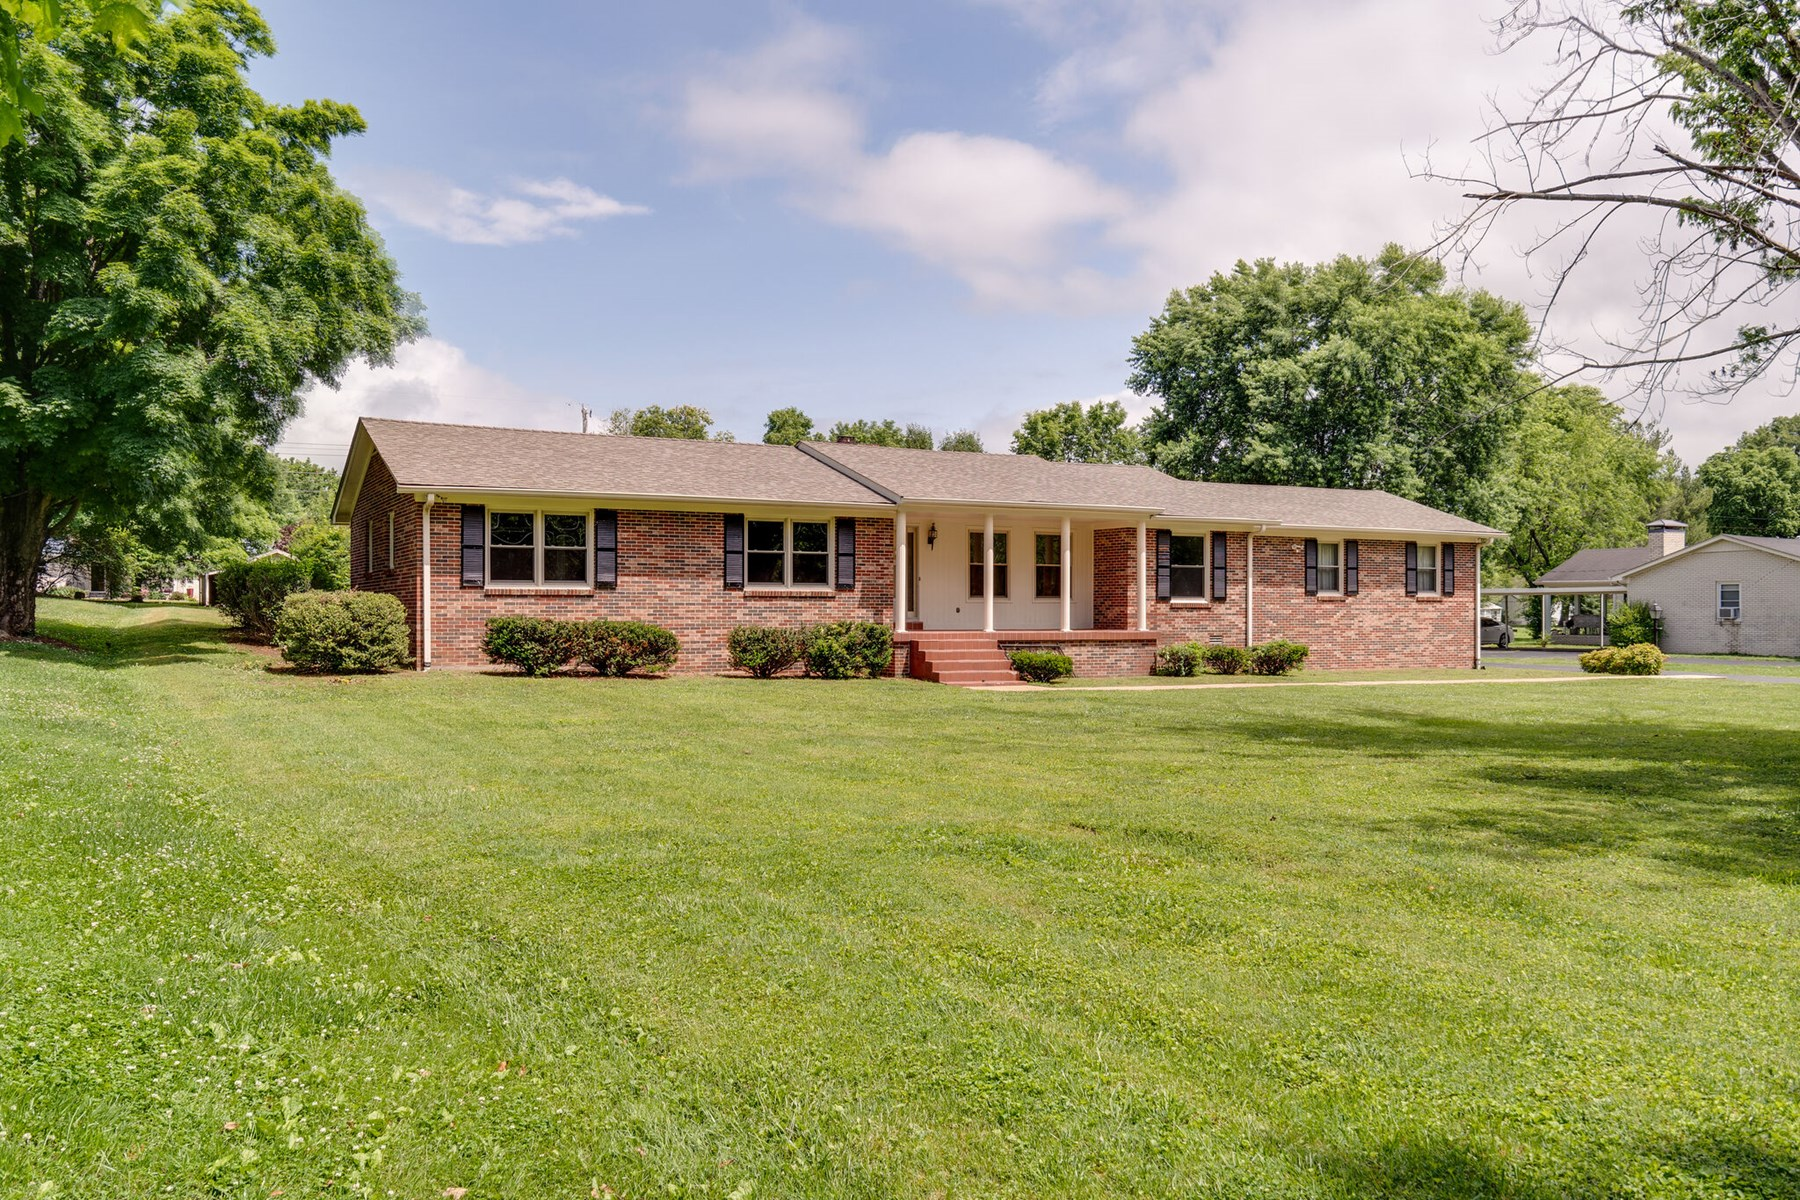 All Brick Home for Sale, in Columbia, Maury Co, Tennessee